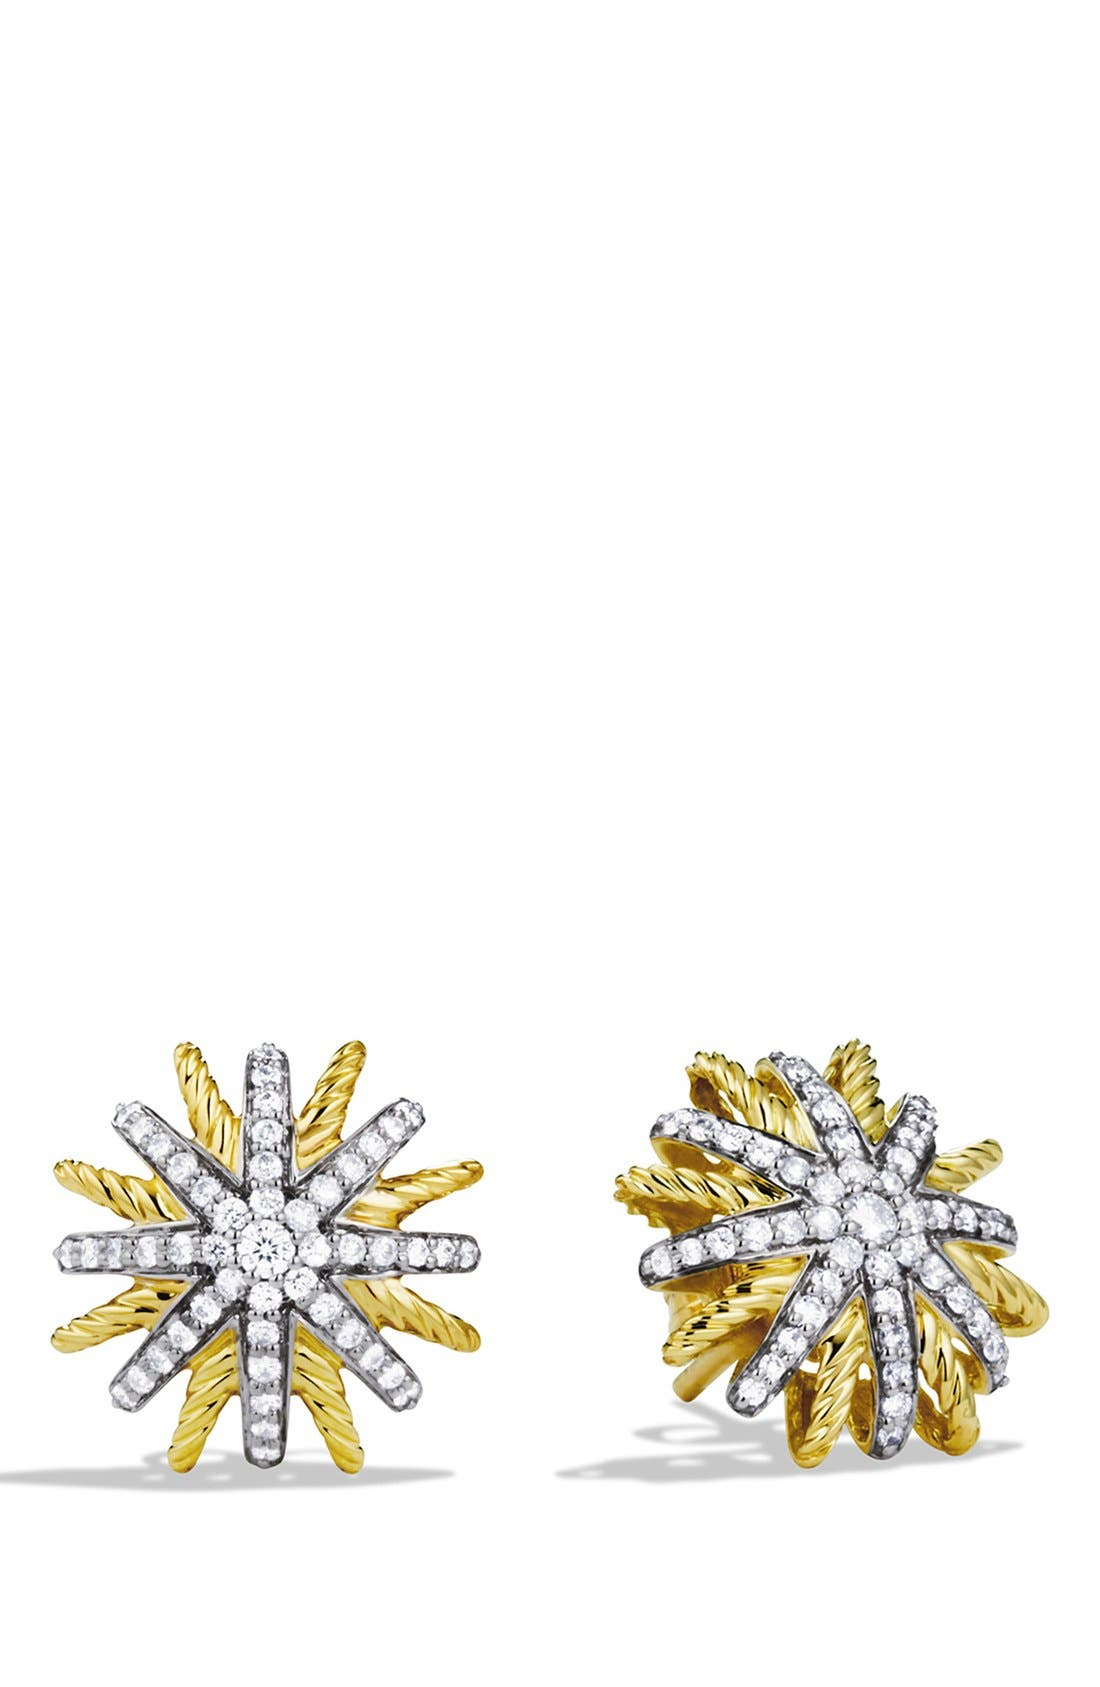 'Starburst' Extra-Small Earrings with Diamonds in Gold,                             Main thumbnail 1, color,                             DIAMOND